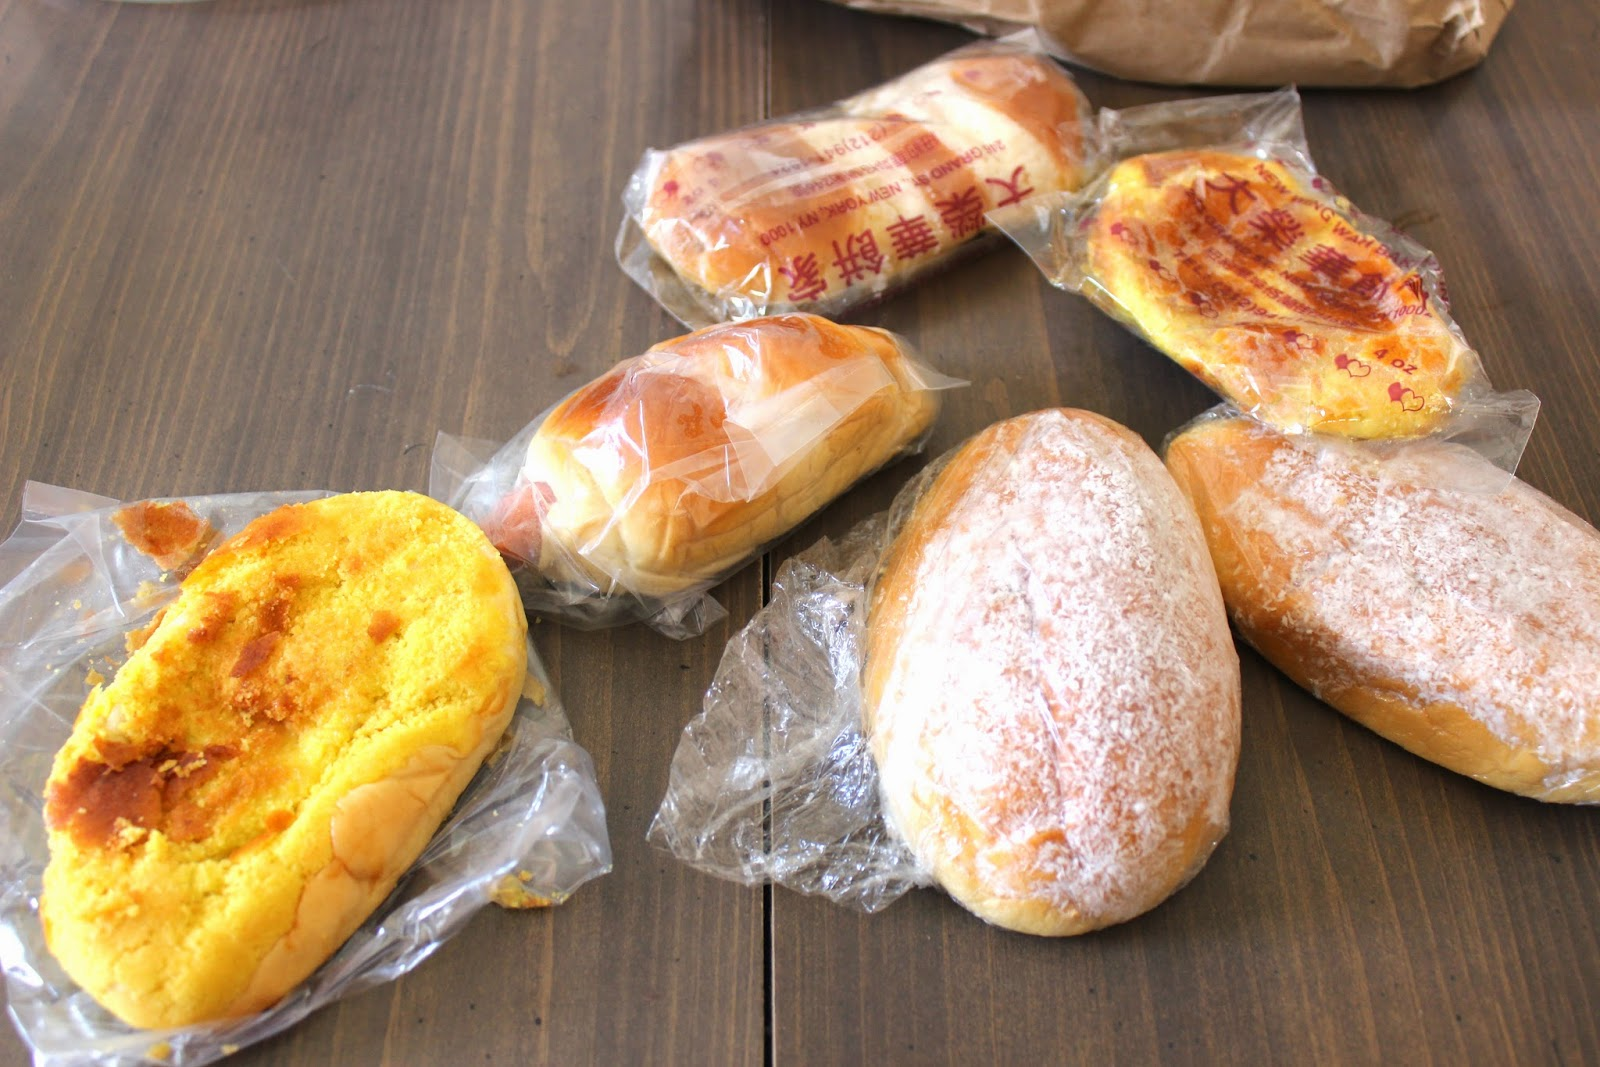 Chinese Bakery Bread